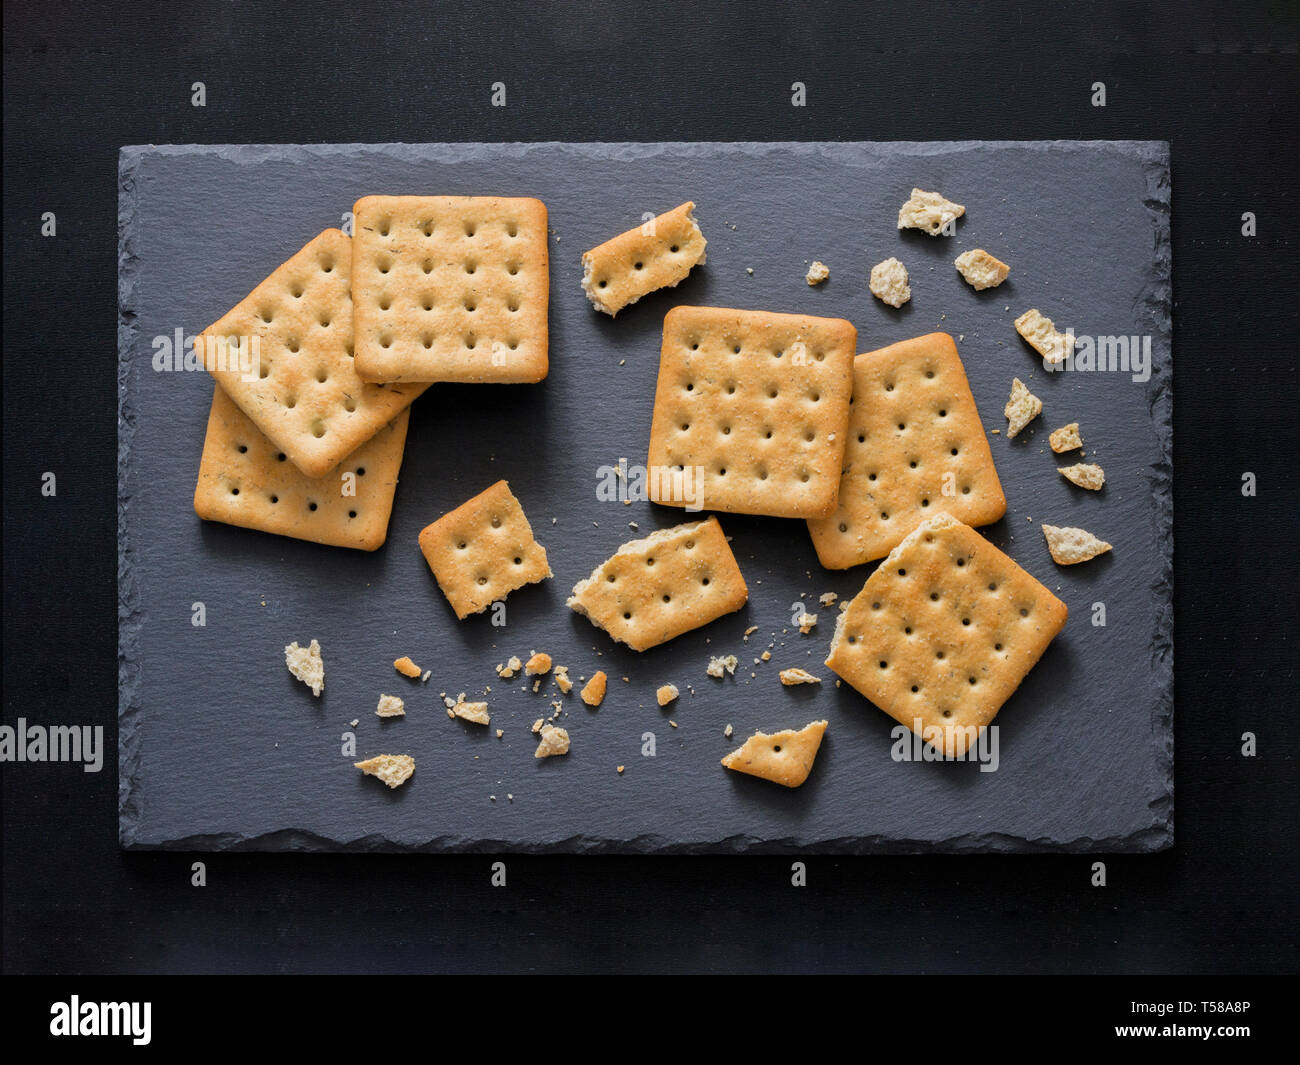 Square crackers with pieces and crumbs on slate gray background. Dry salt cracker cookies with fiber and dry spices. Top view or flat lay. - Stock Image